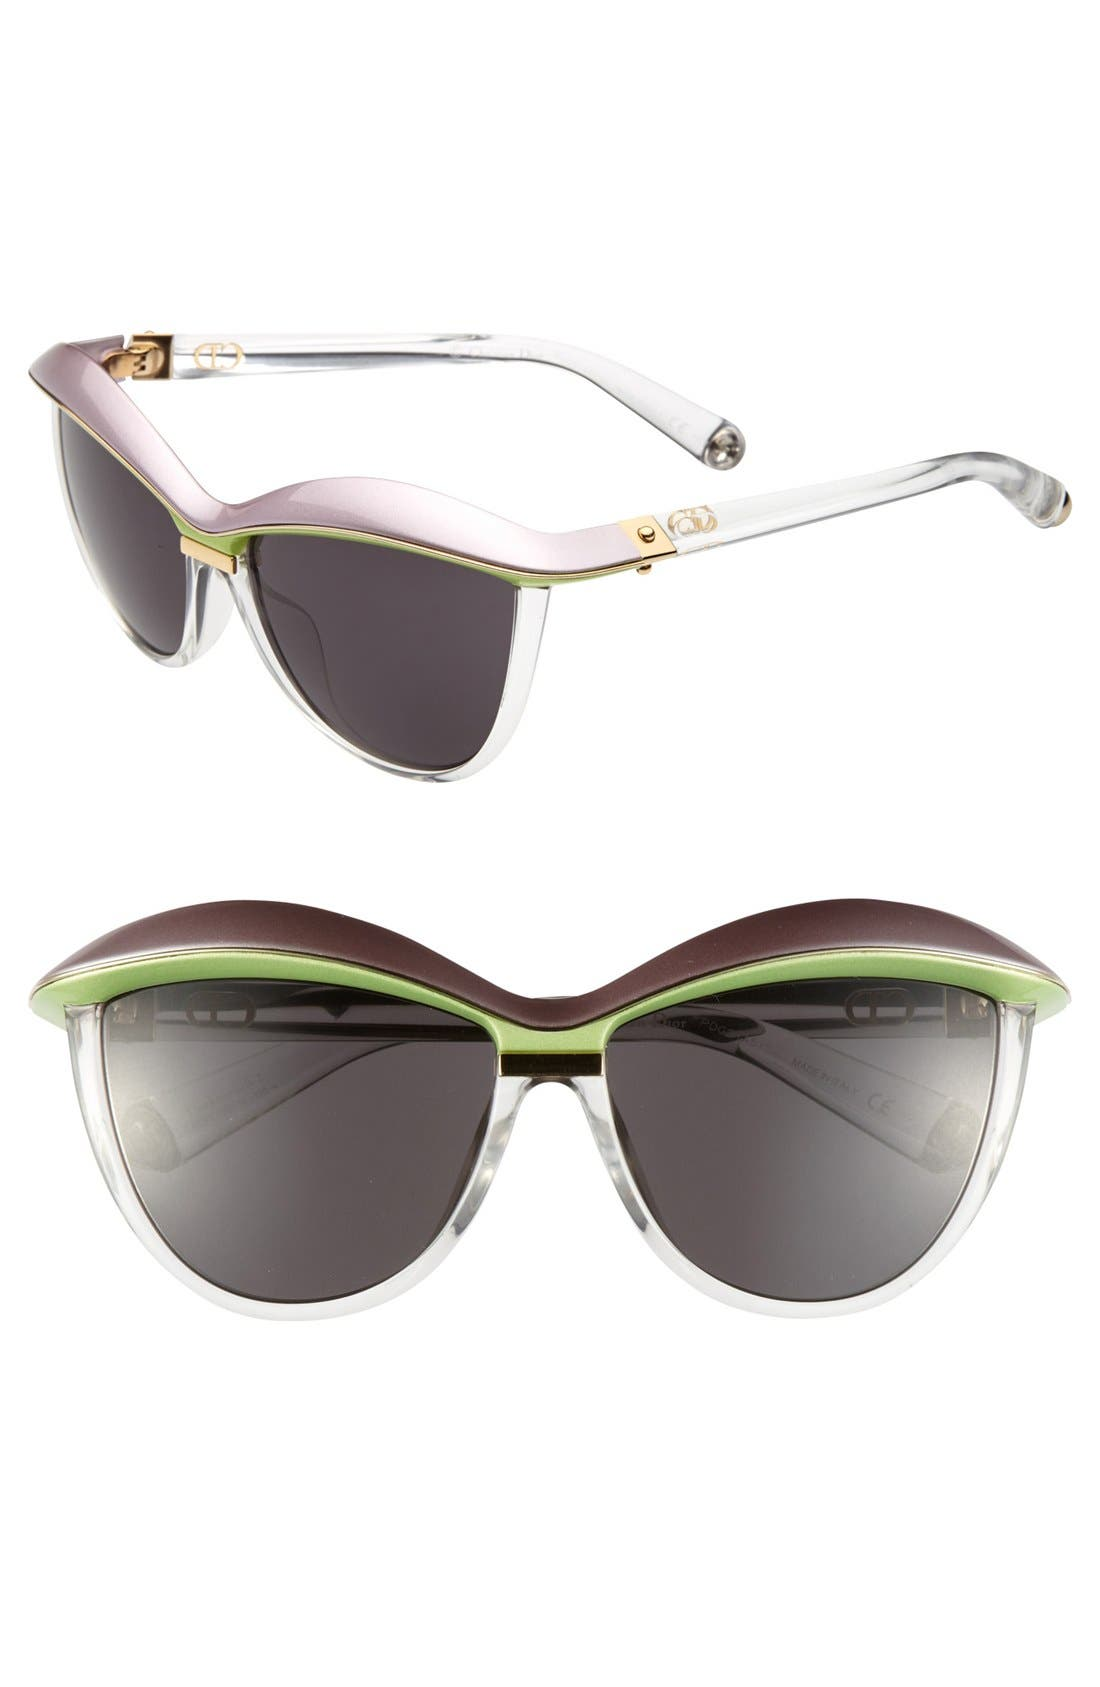 Alternate Image 1 Selected - Dior 'Demoiselle 2' 58mm Retro Sunglasses